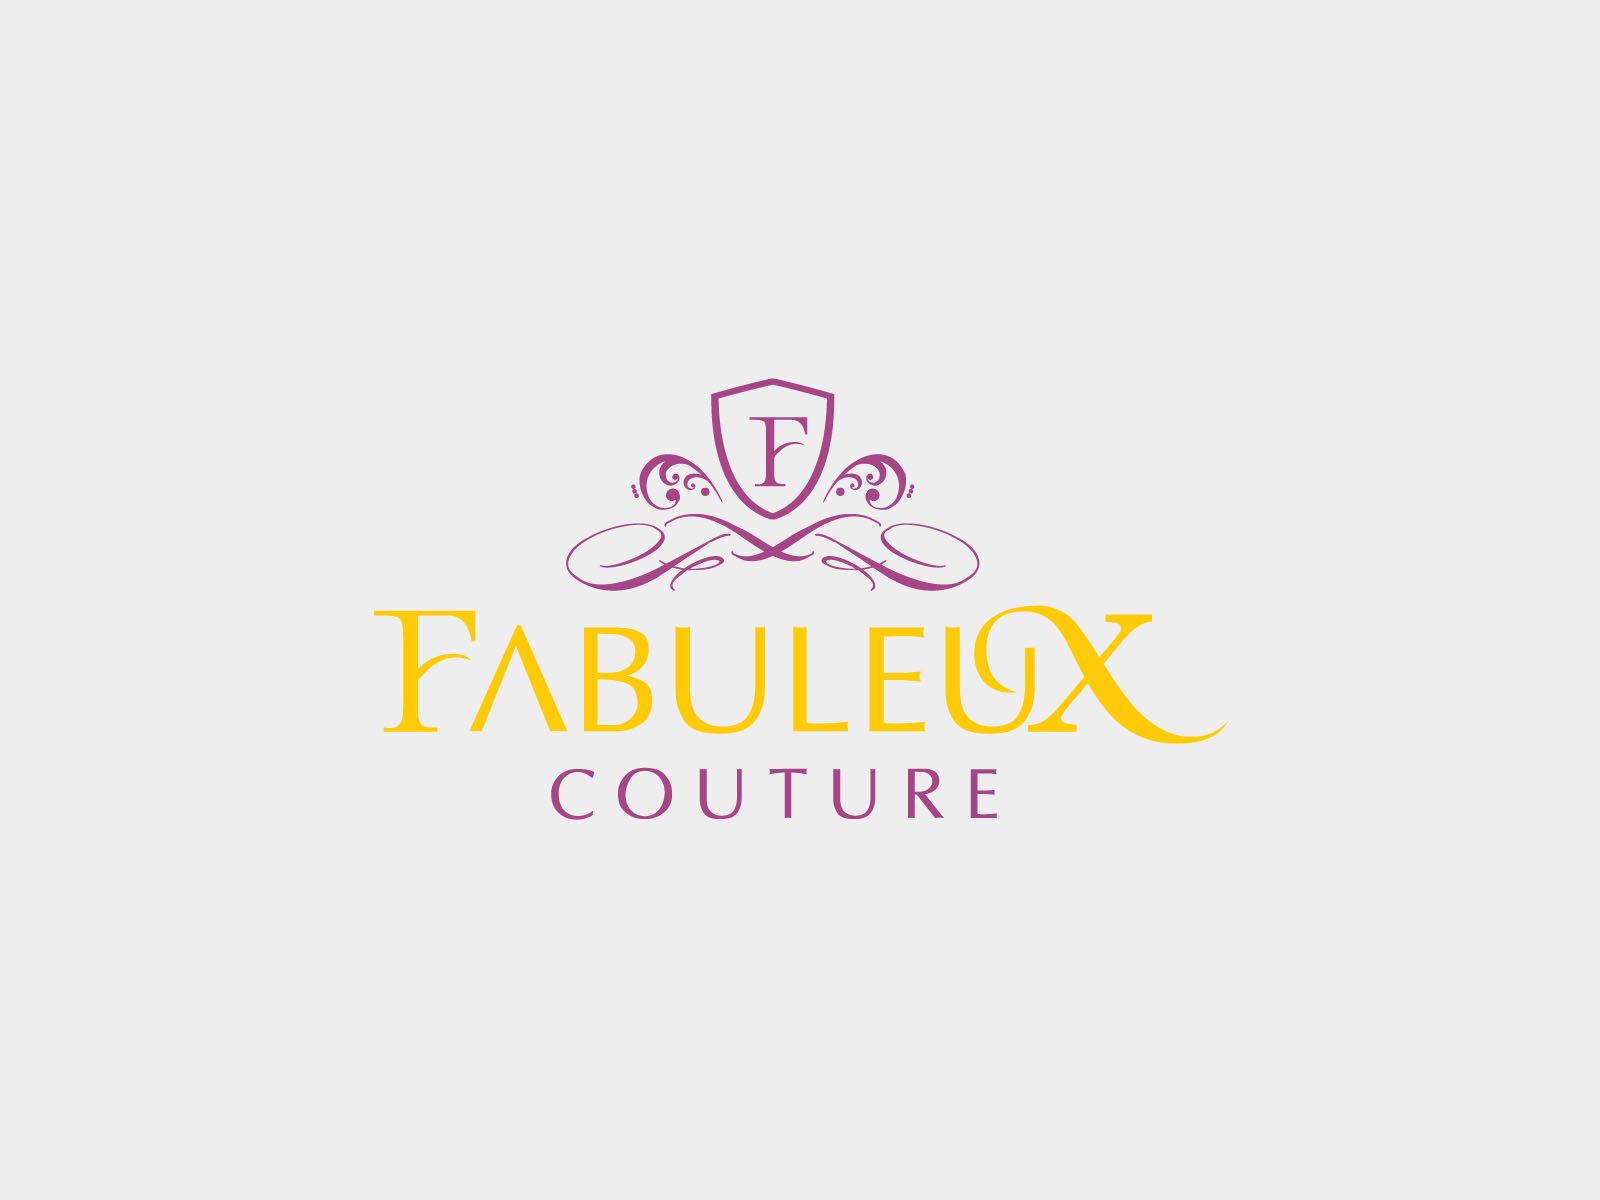 Fabuleux Couture